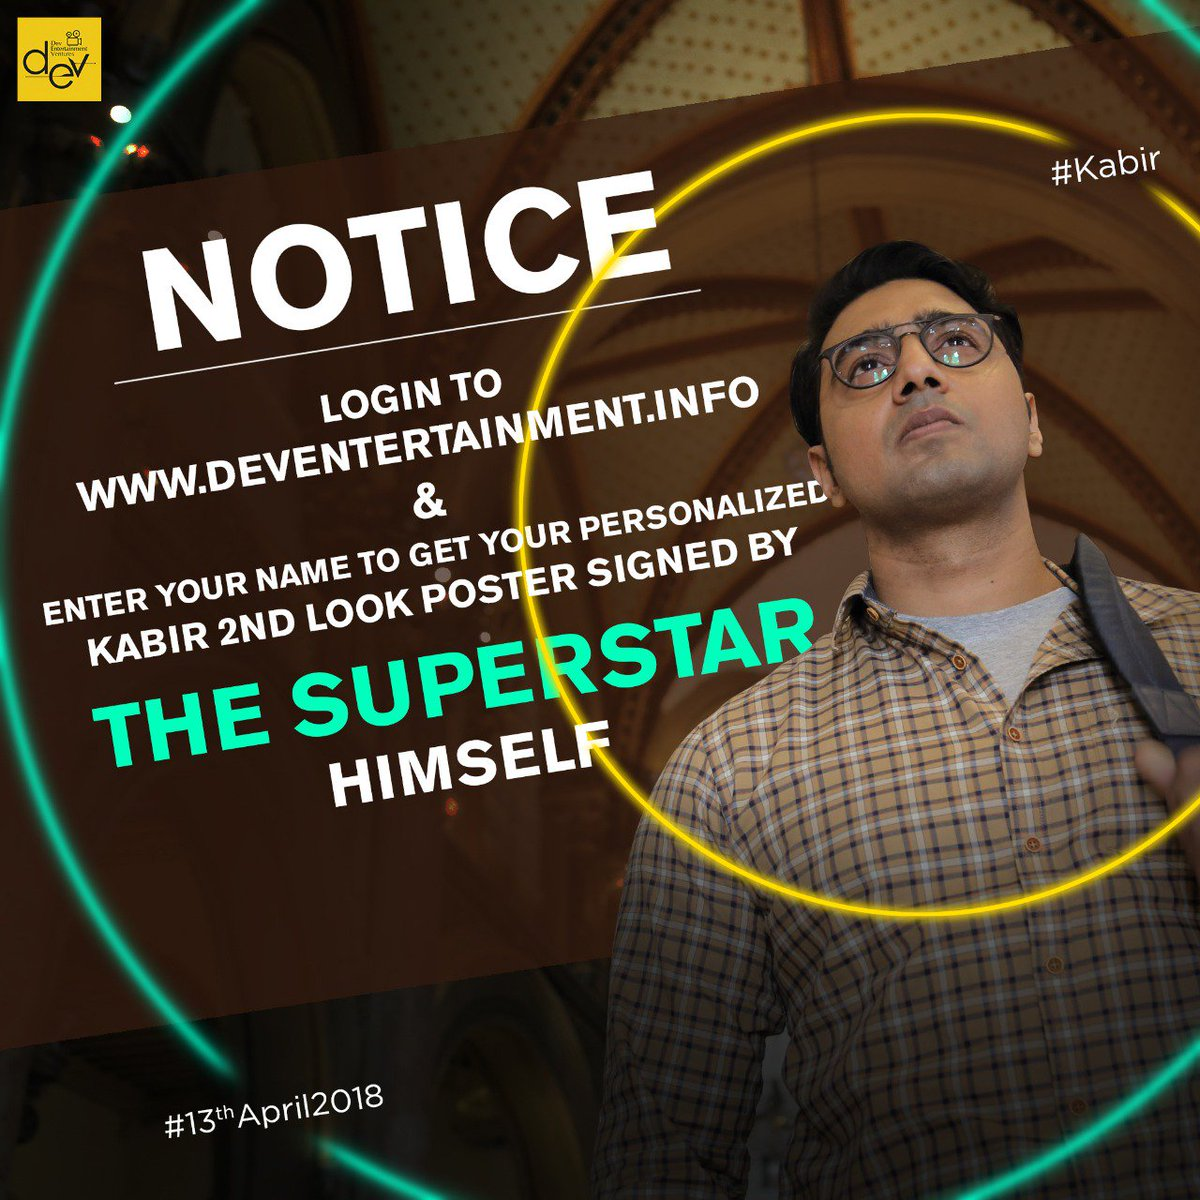 The Next New Personalised Poster of #KABIR is here ! Are you ready to get yours ? Then Login into 👉 deventertainment.info. Tweet us your personalized poster.  #KABIR #April2018.